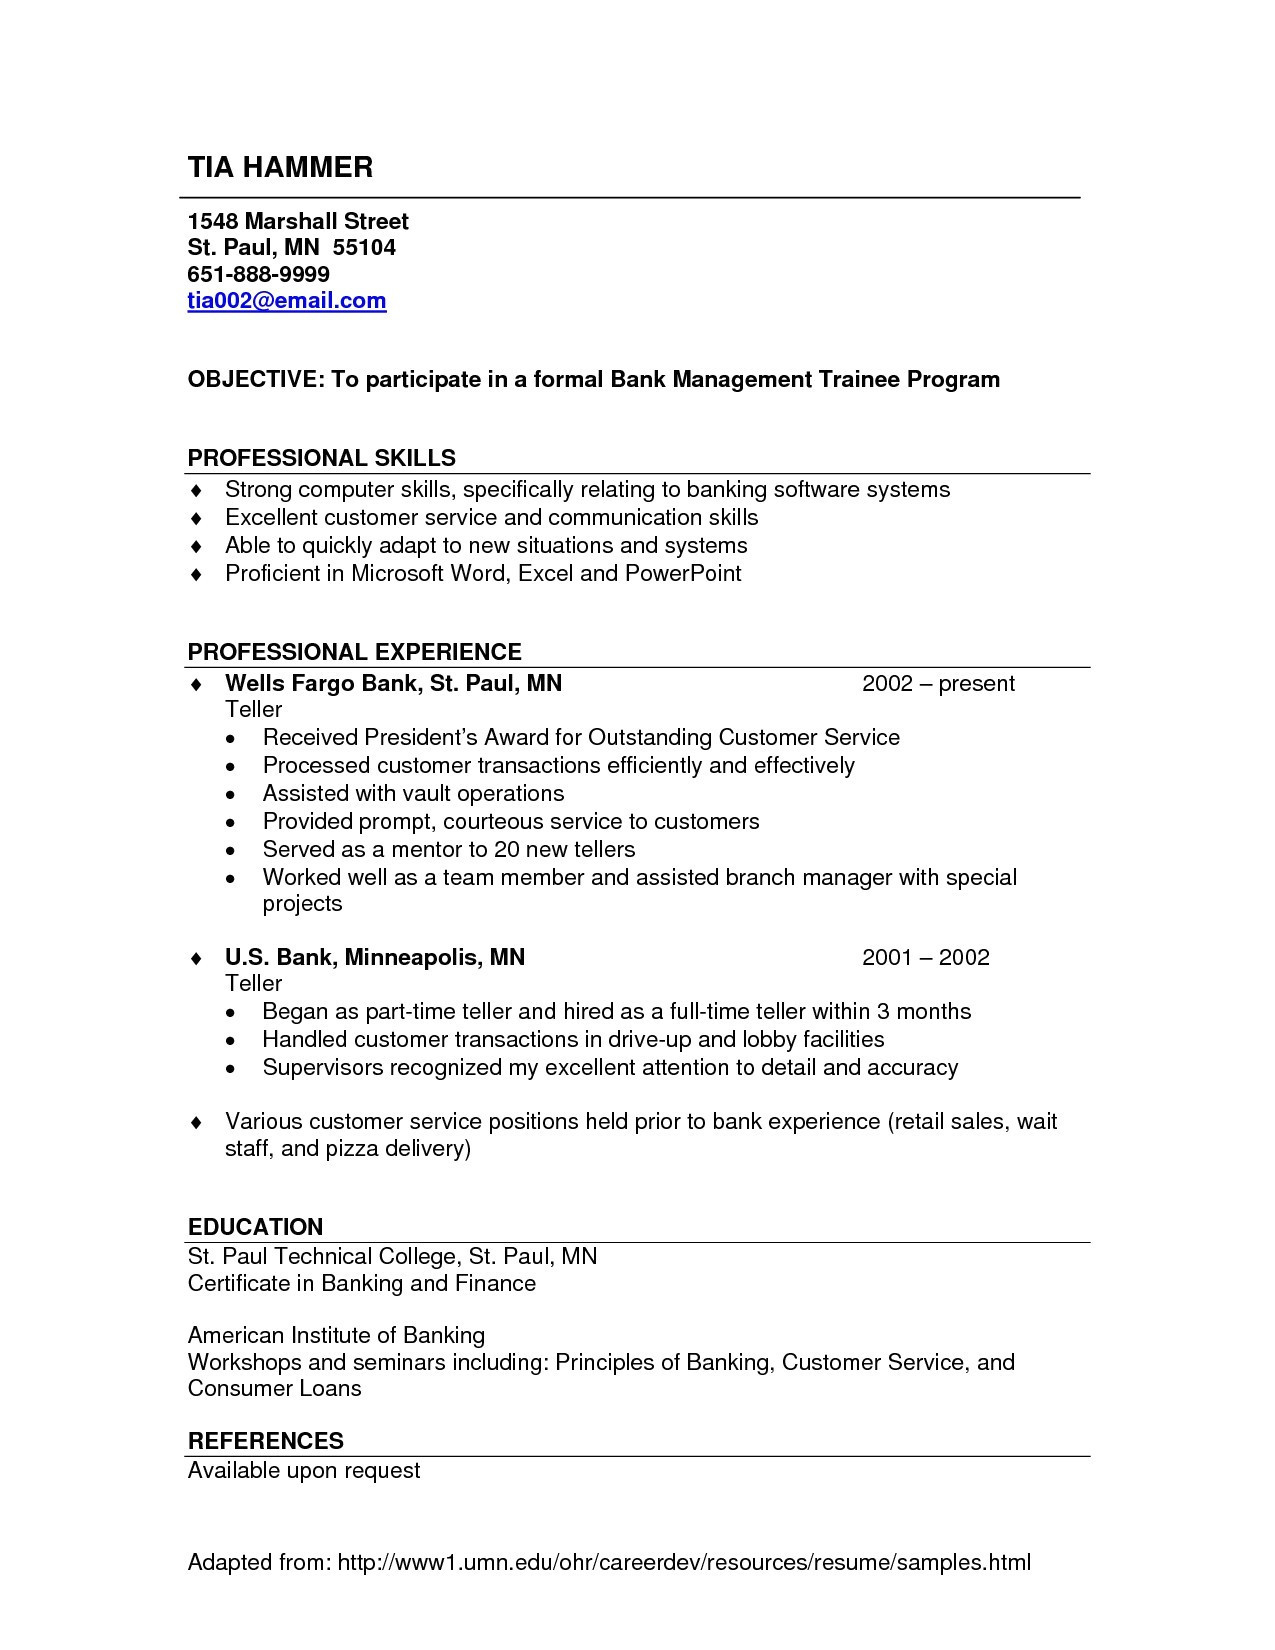 Supervisor Resume Samples - Apa Resume Template New Examples A Resume Fresh Resume Examples 0d